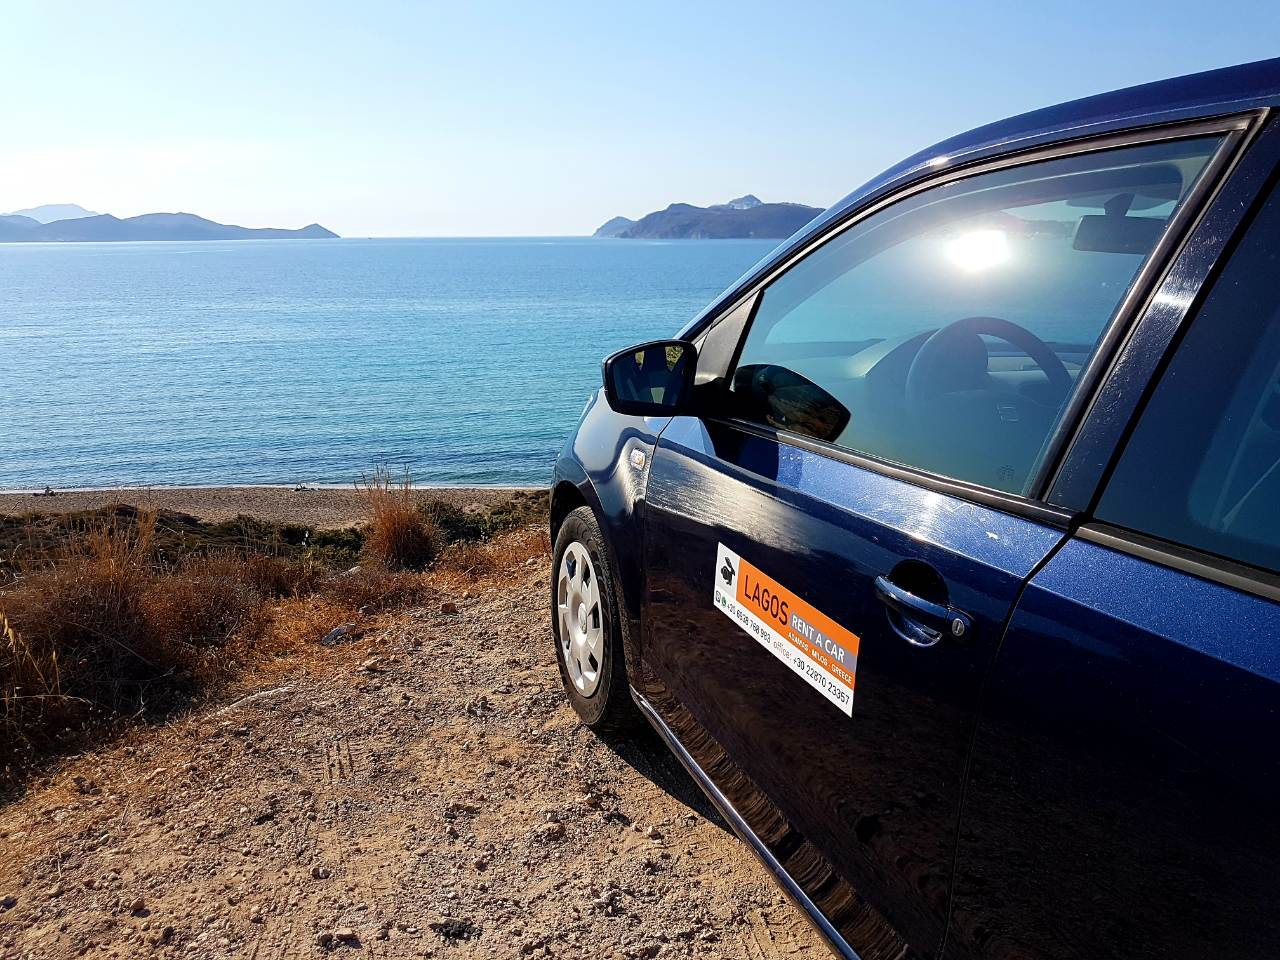 lagos_milos_rent_a_car